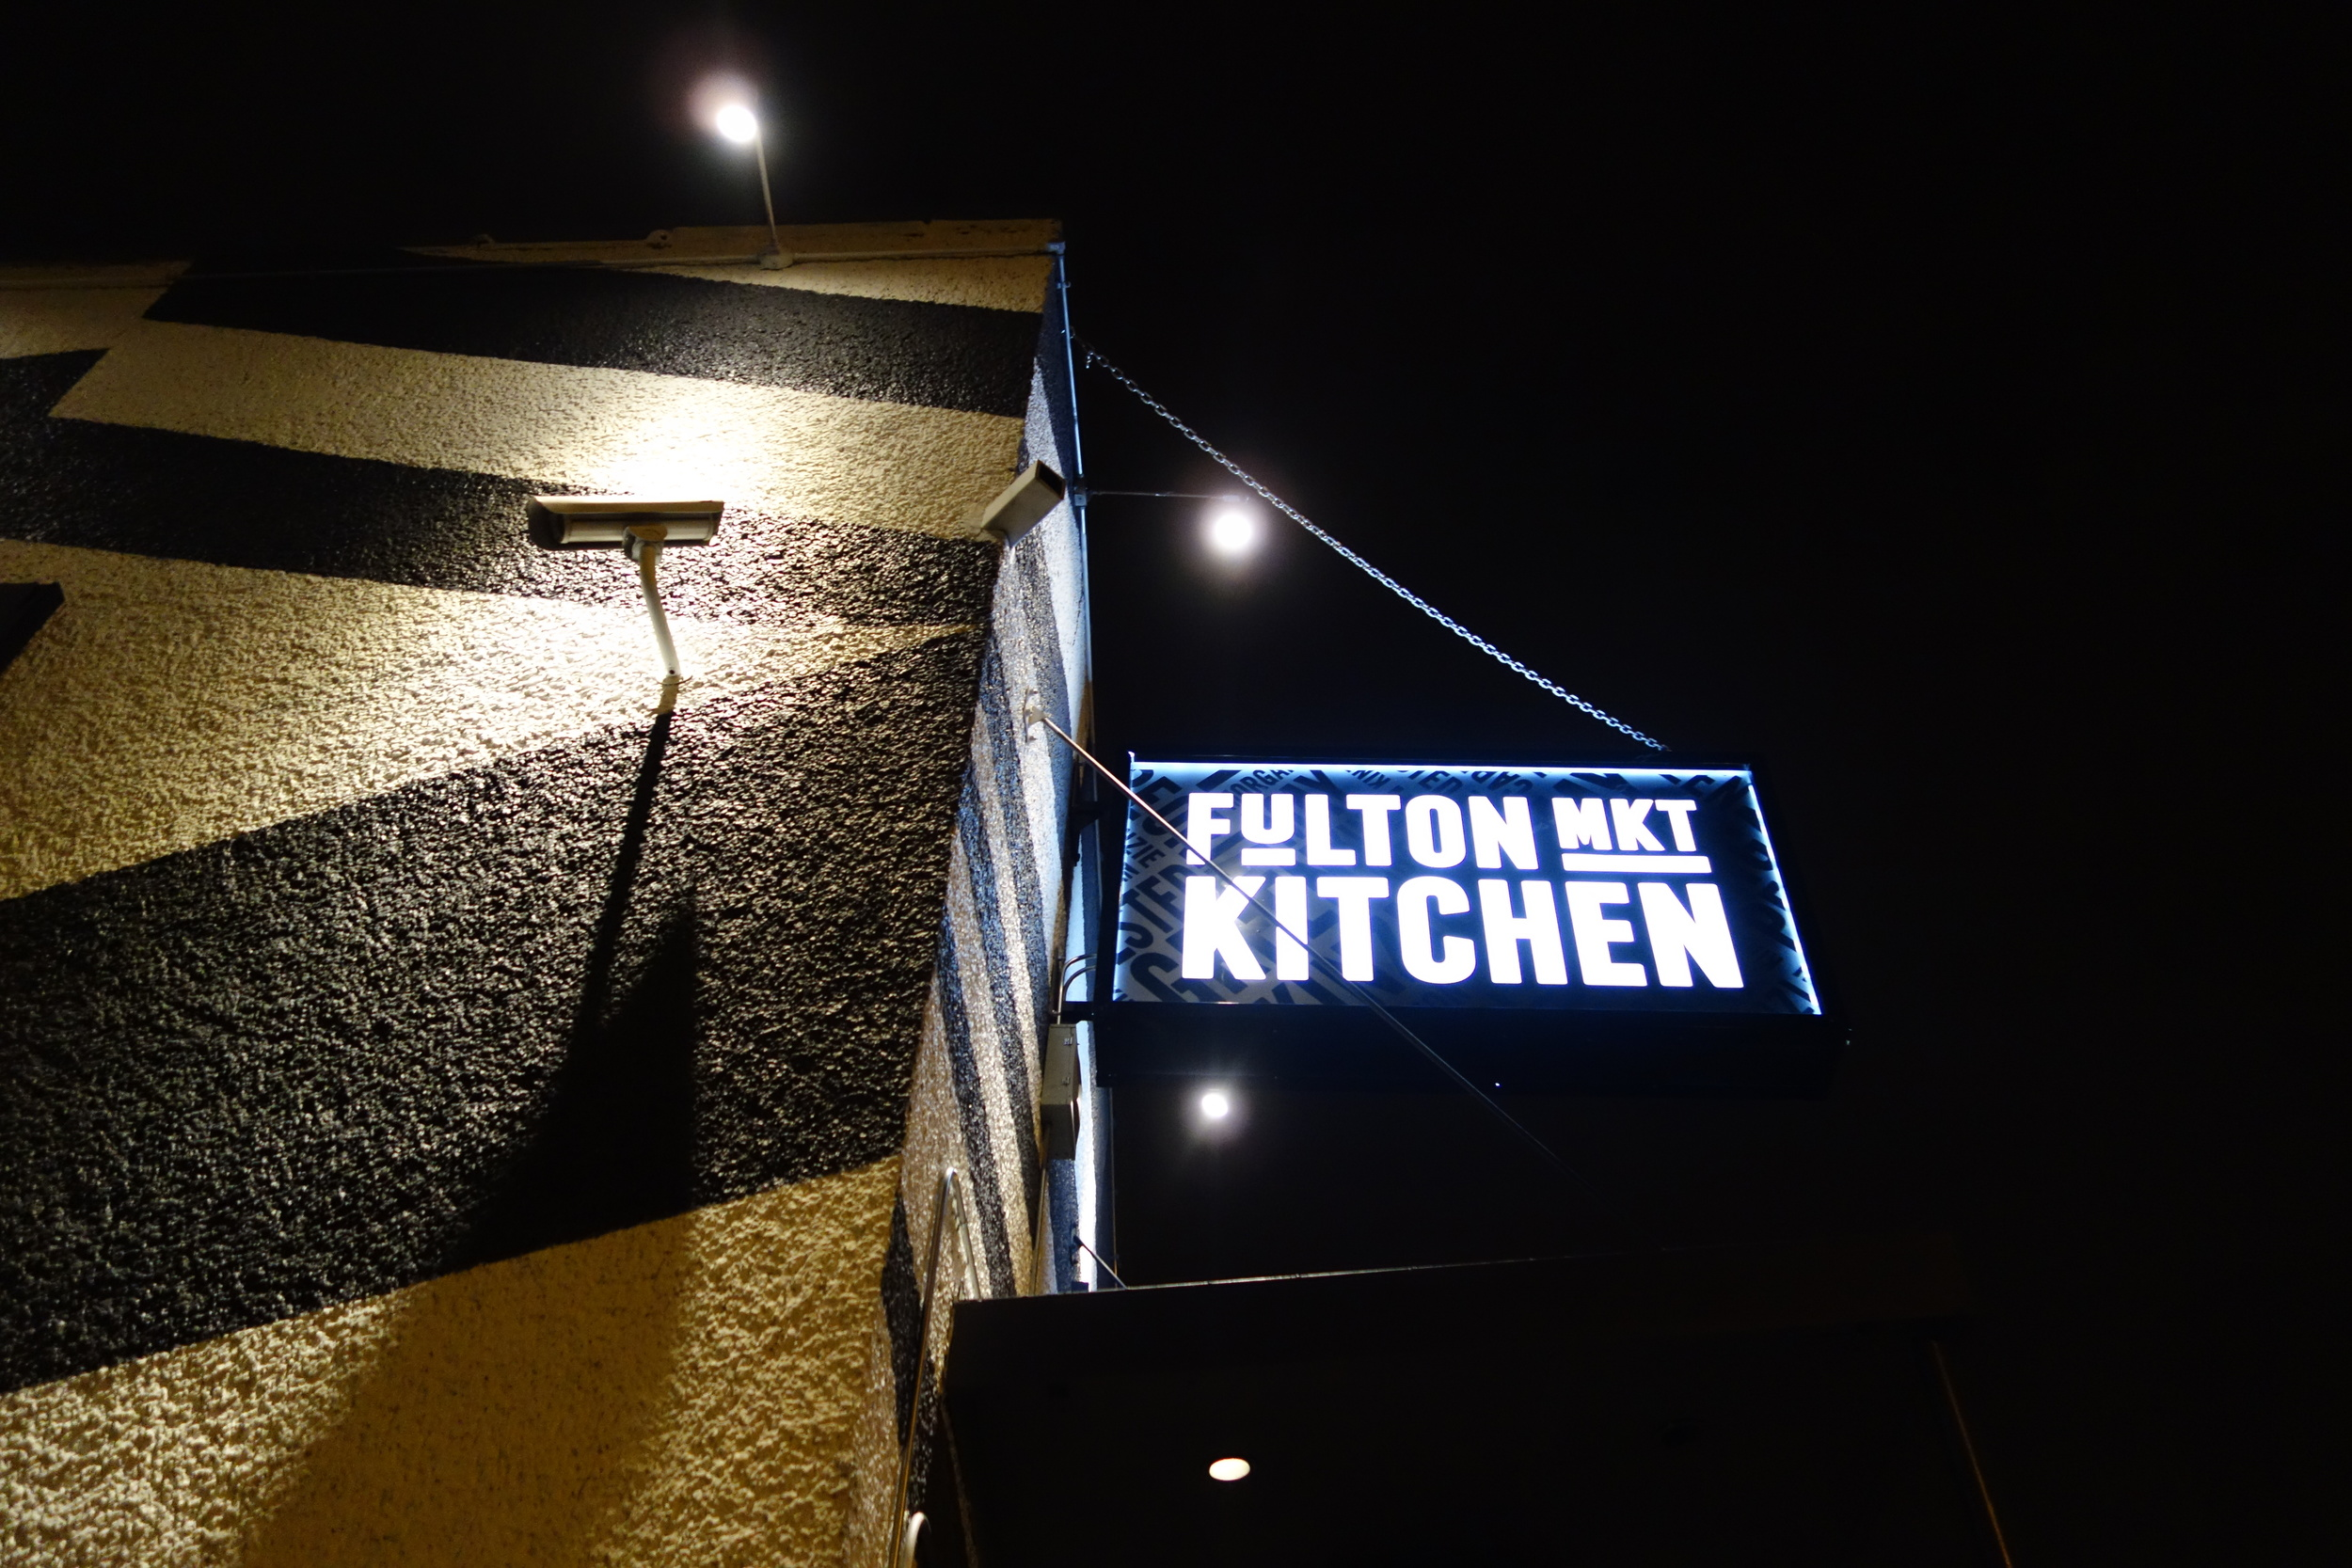 The outside sign for Fulton Market Kitchen in Chicago's west loop.